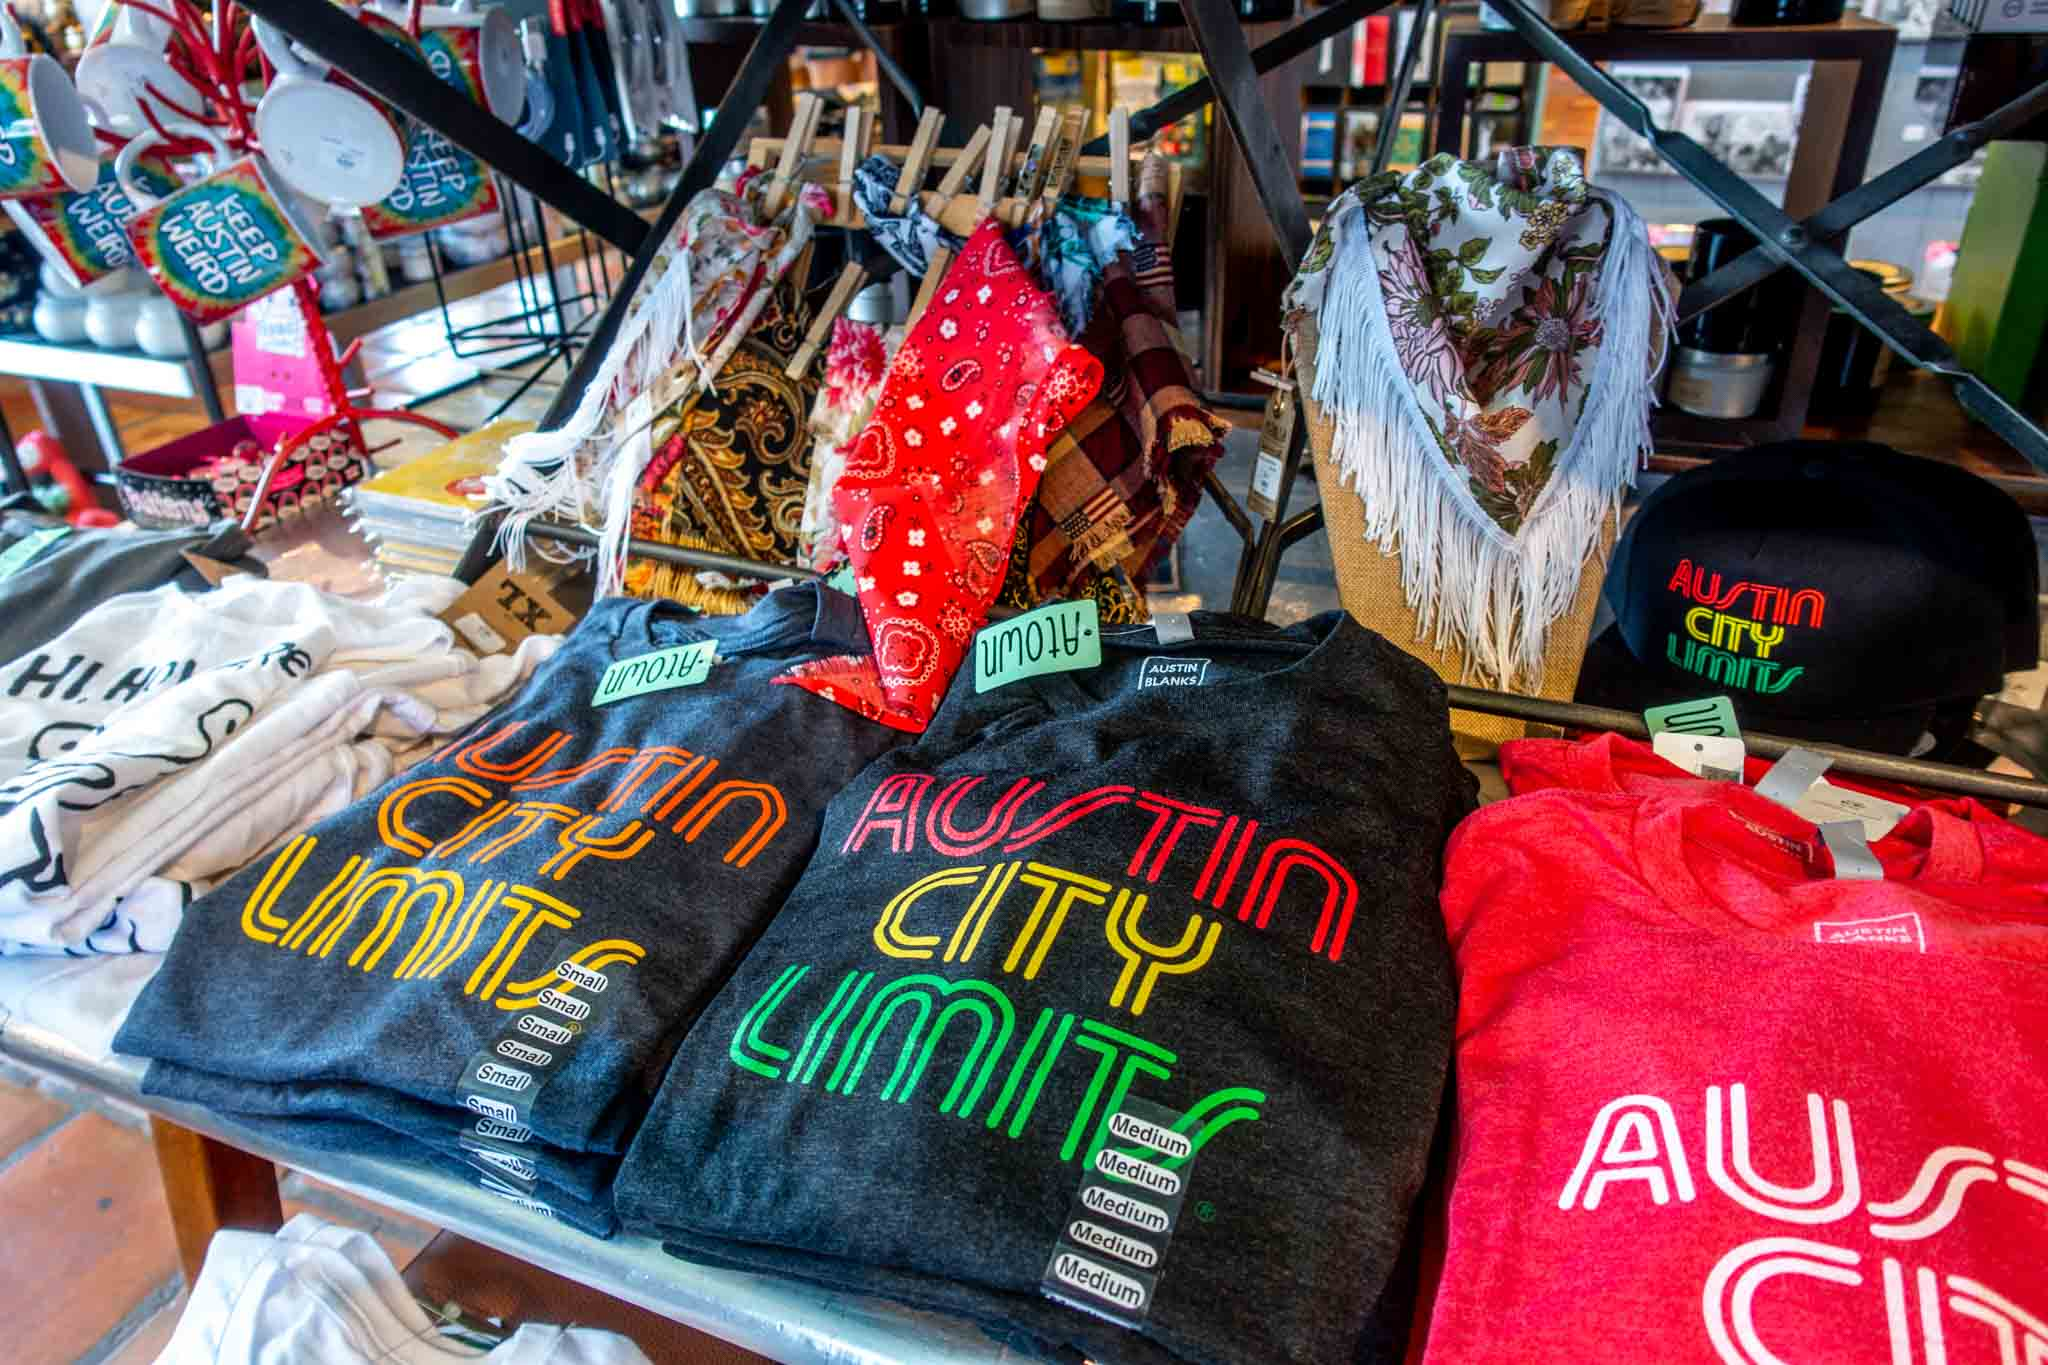 T-shirts and hats on display for sale